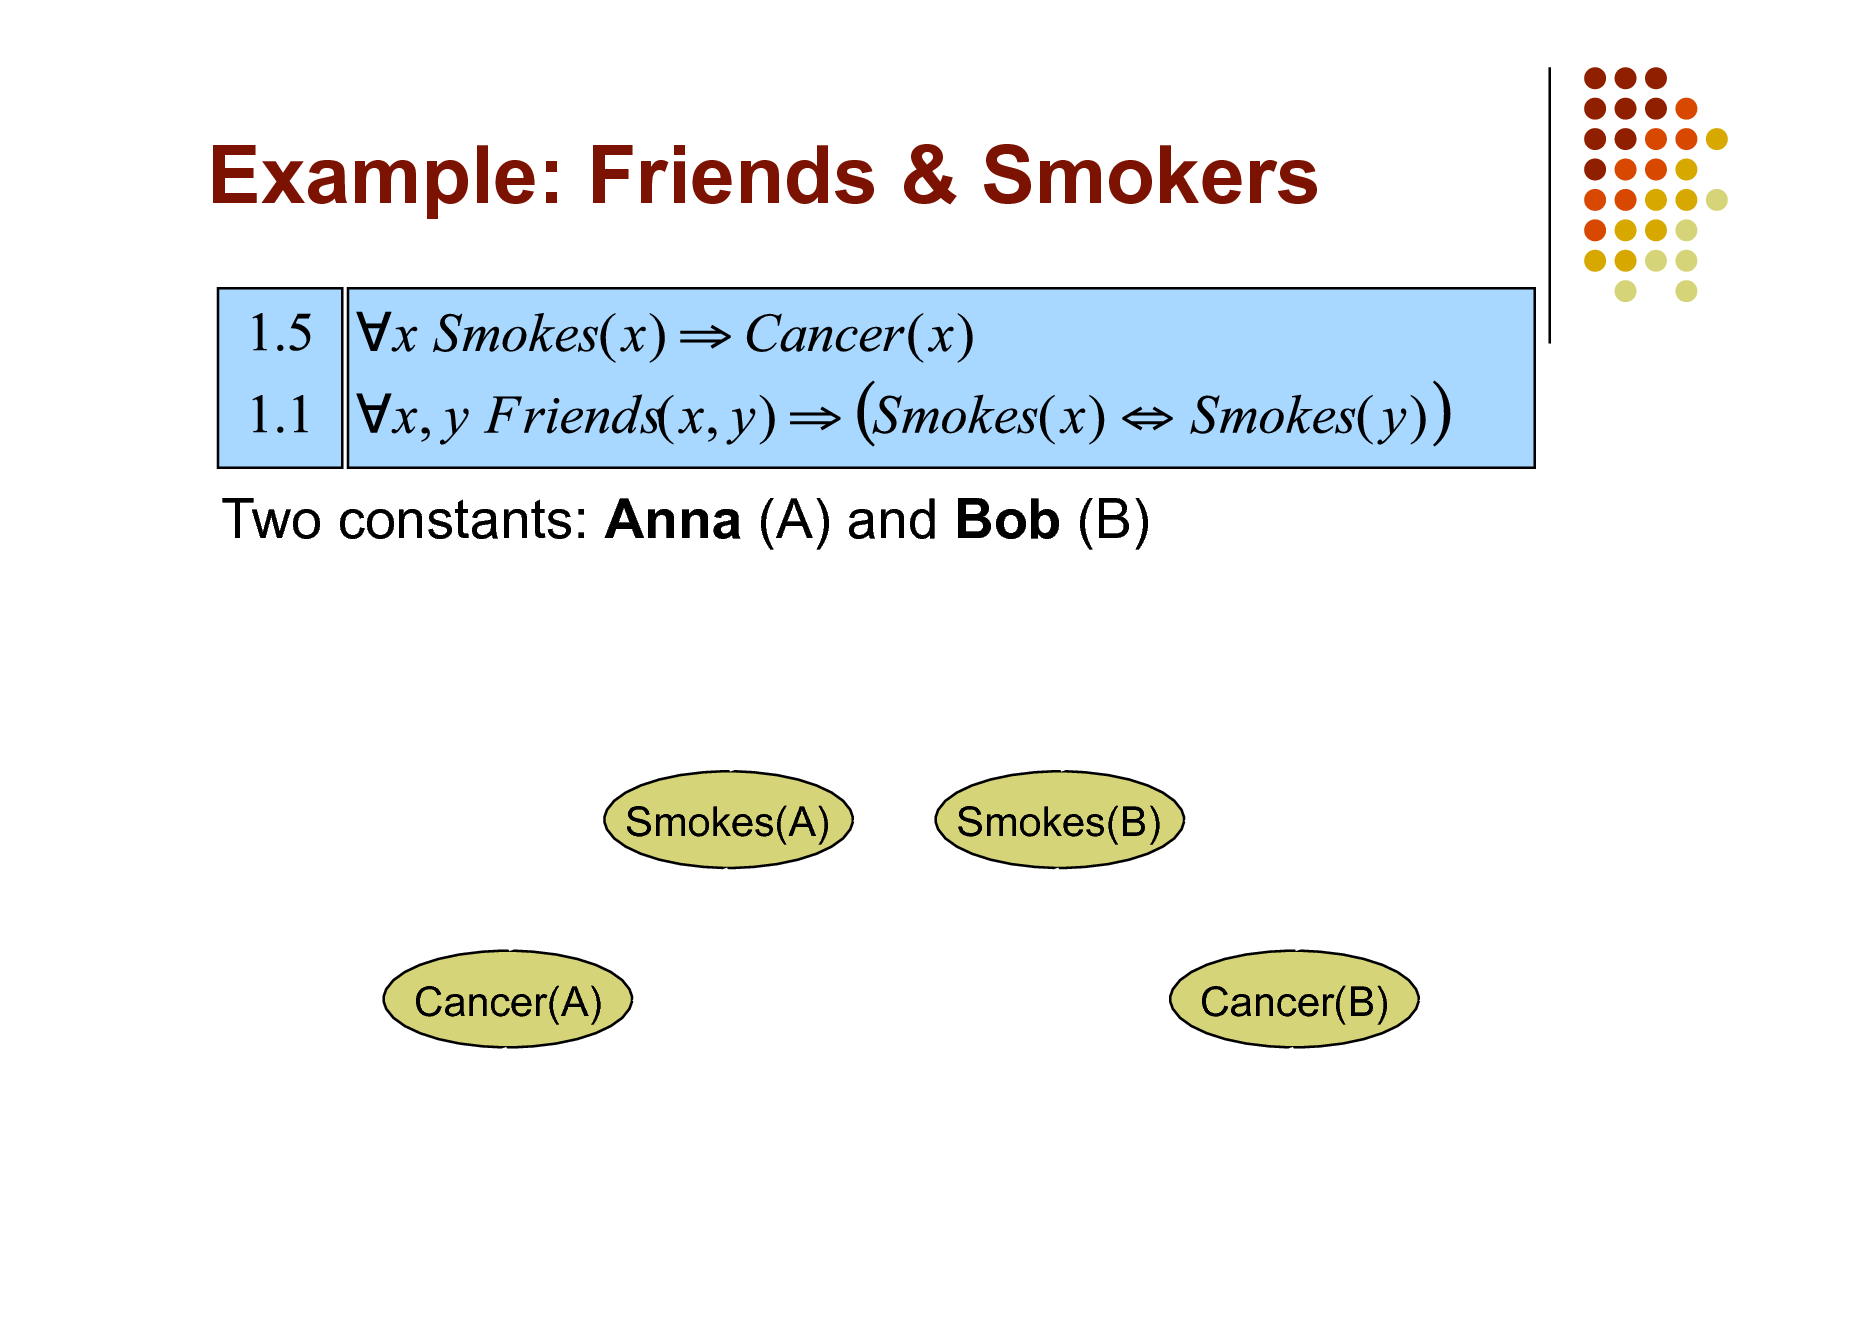 Slide: Example: Friends & Smokers  Two constants: Anna (A) and Bob (B)  Smokes(A)  Smokes(B)  Cancer(A)  Cancer(B)